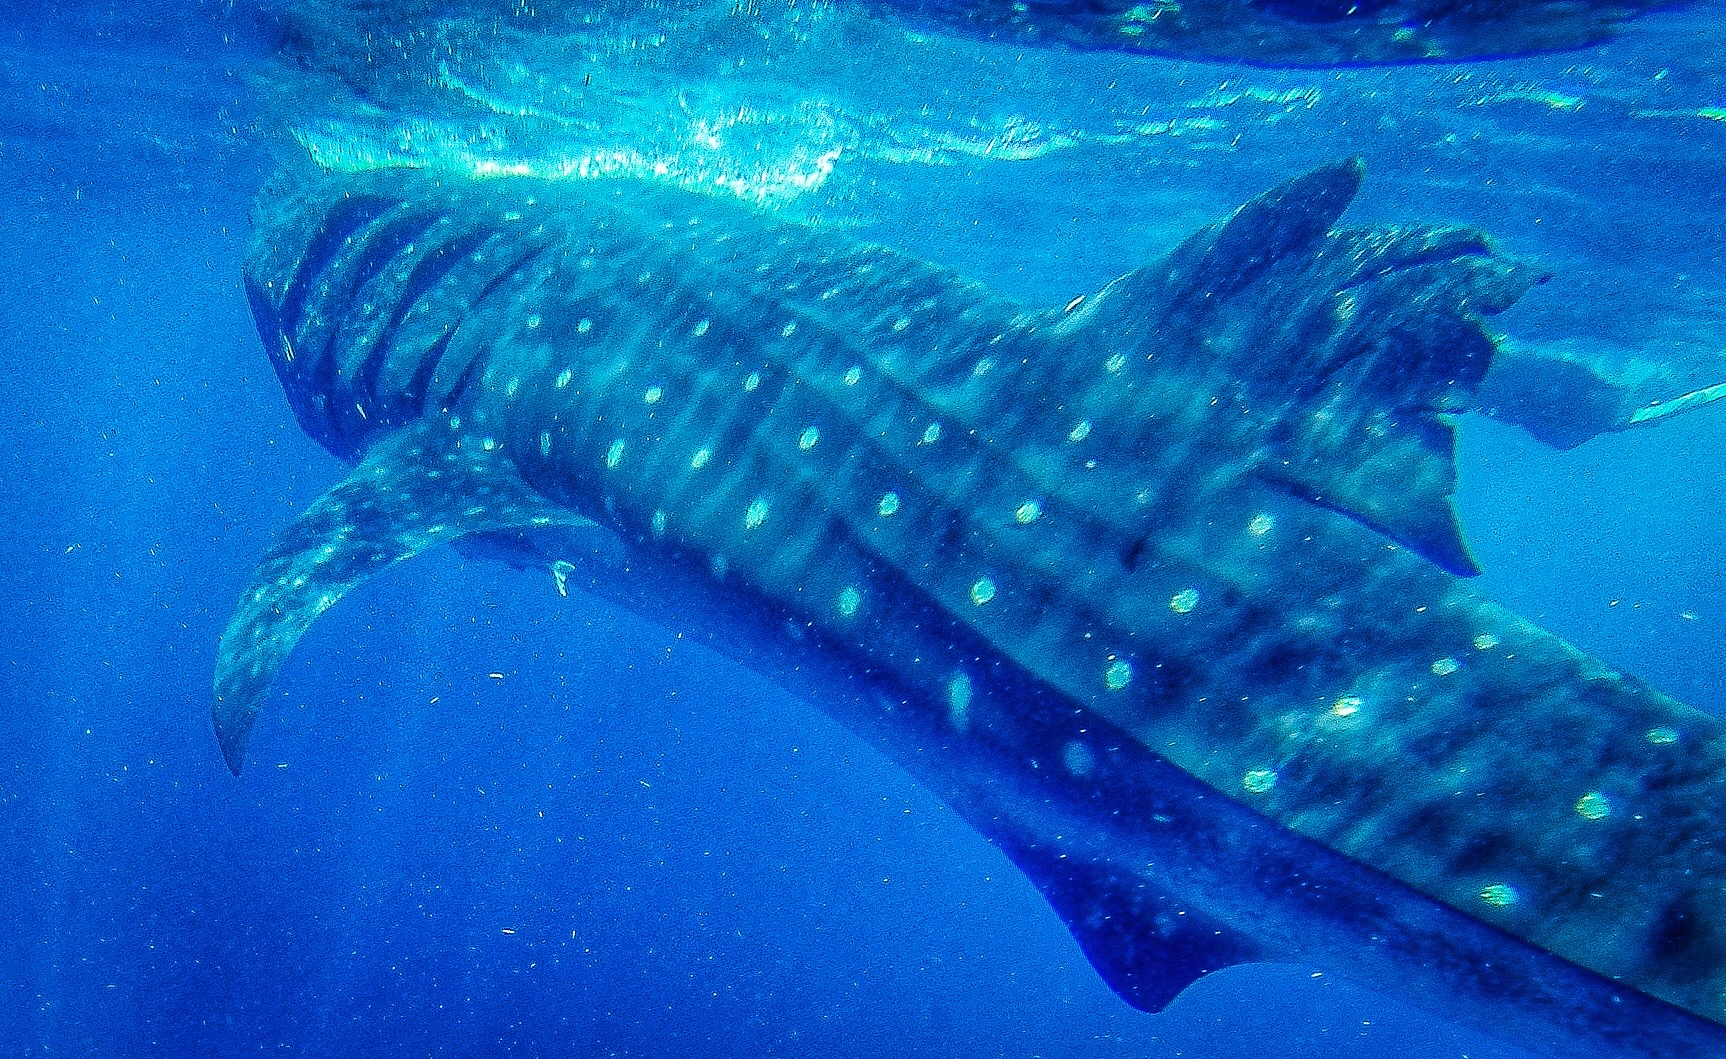 A close - and brief - encounter with a whale shark off Mexico's Yucatan Peninsula